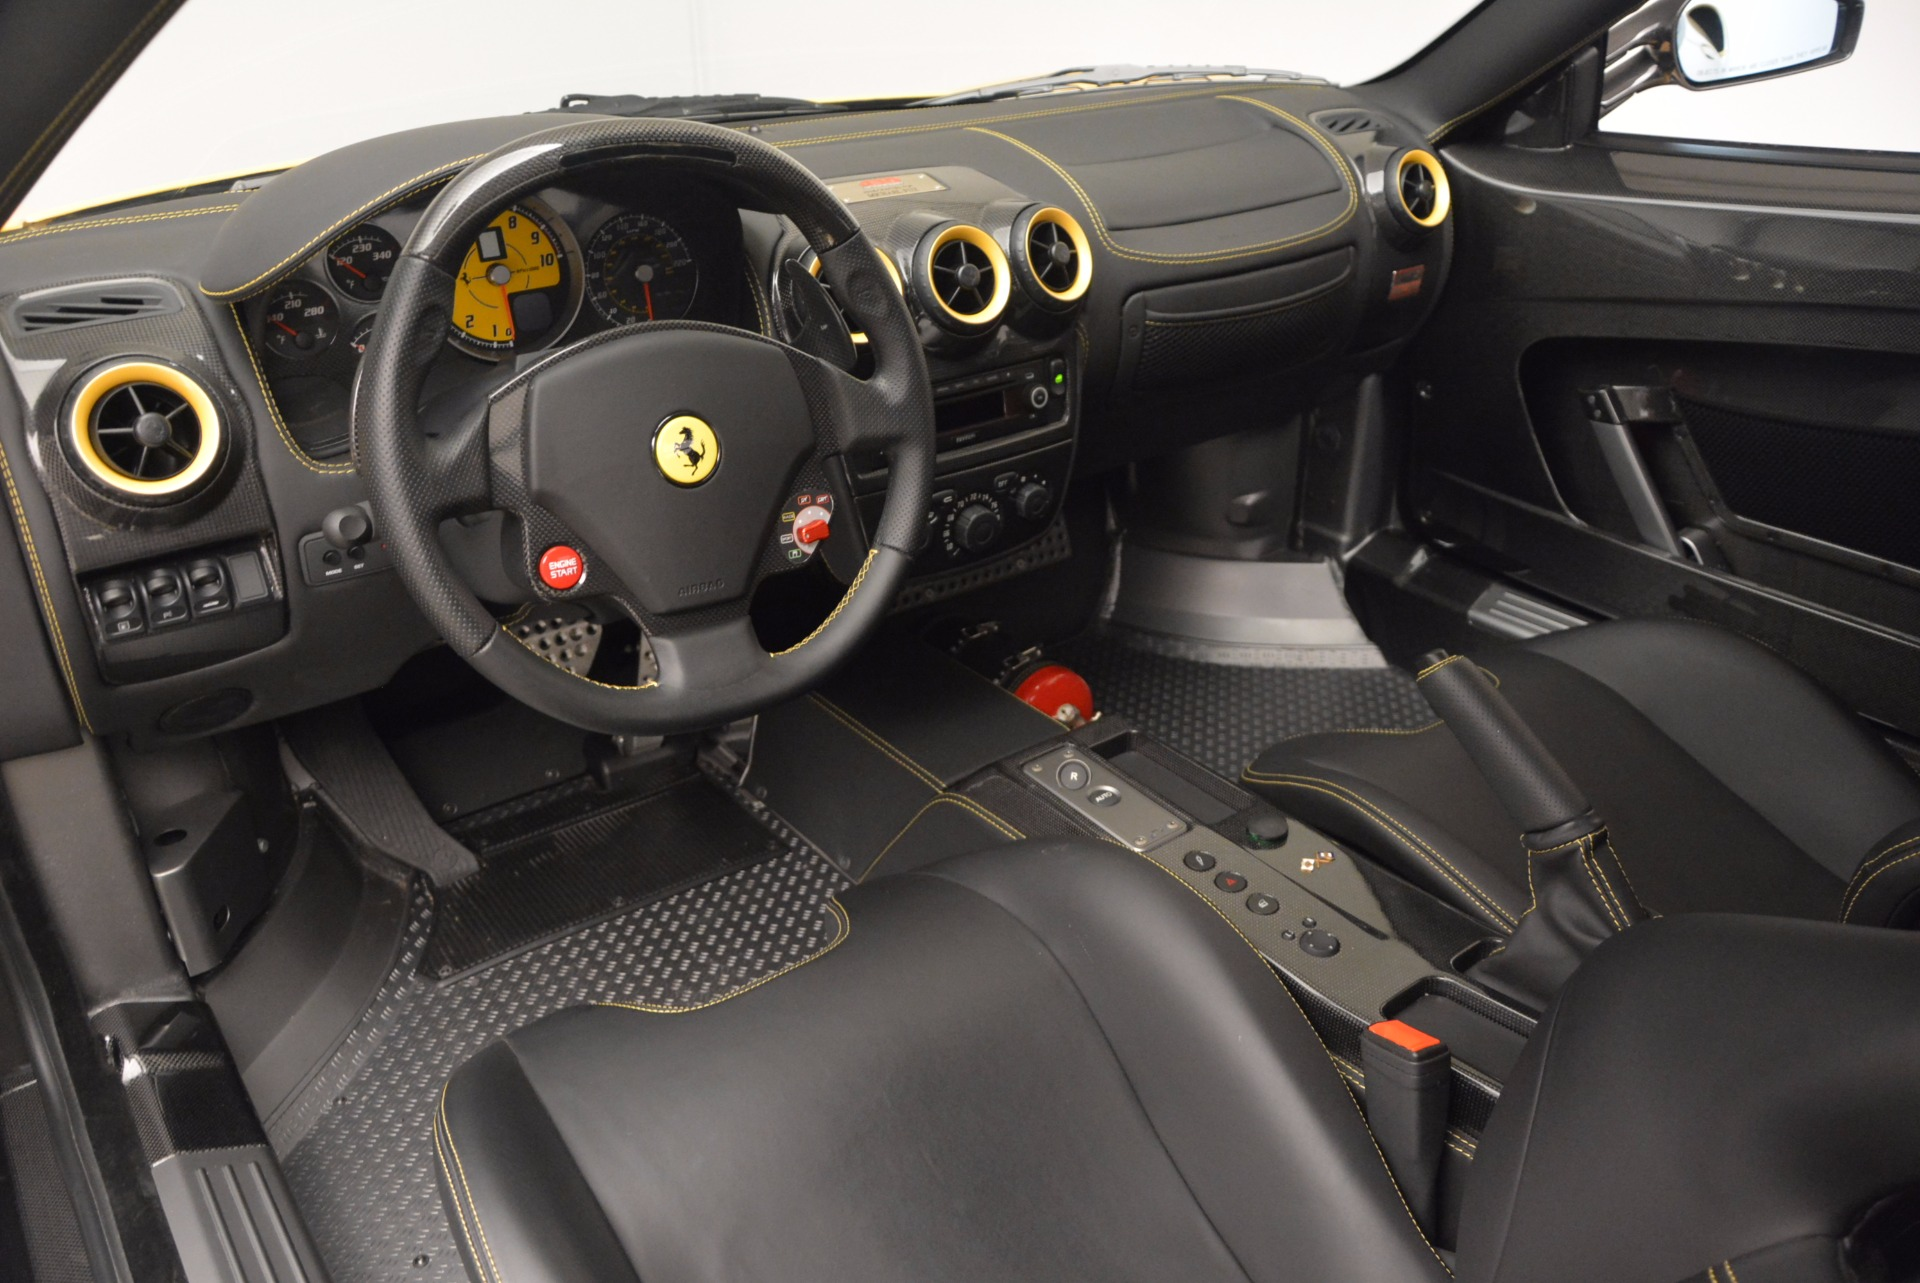 Used 2008 Ferrari F430 Scuderia For Sale In Westport, CT 1397_p13